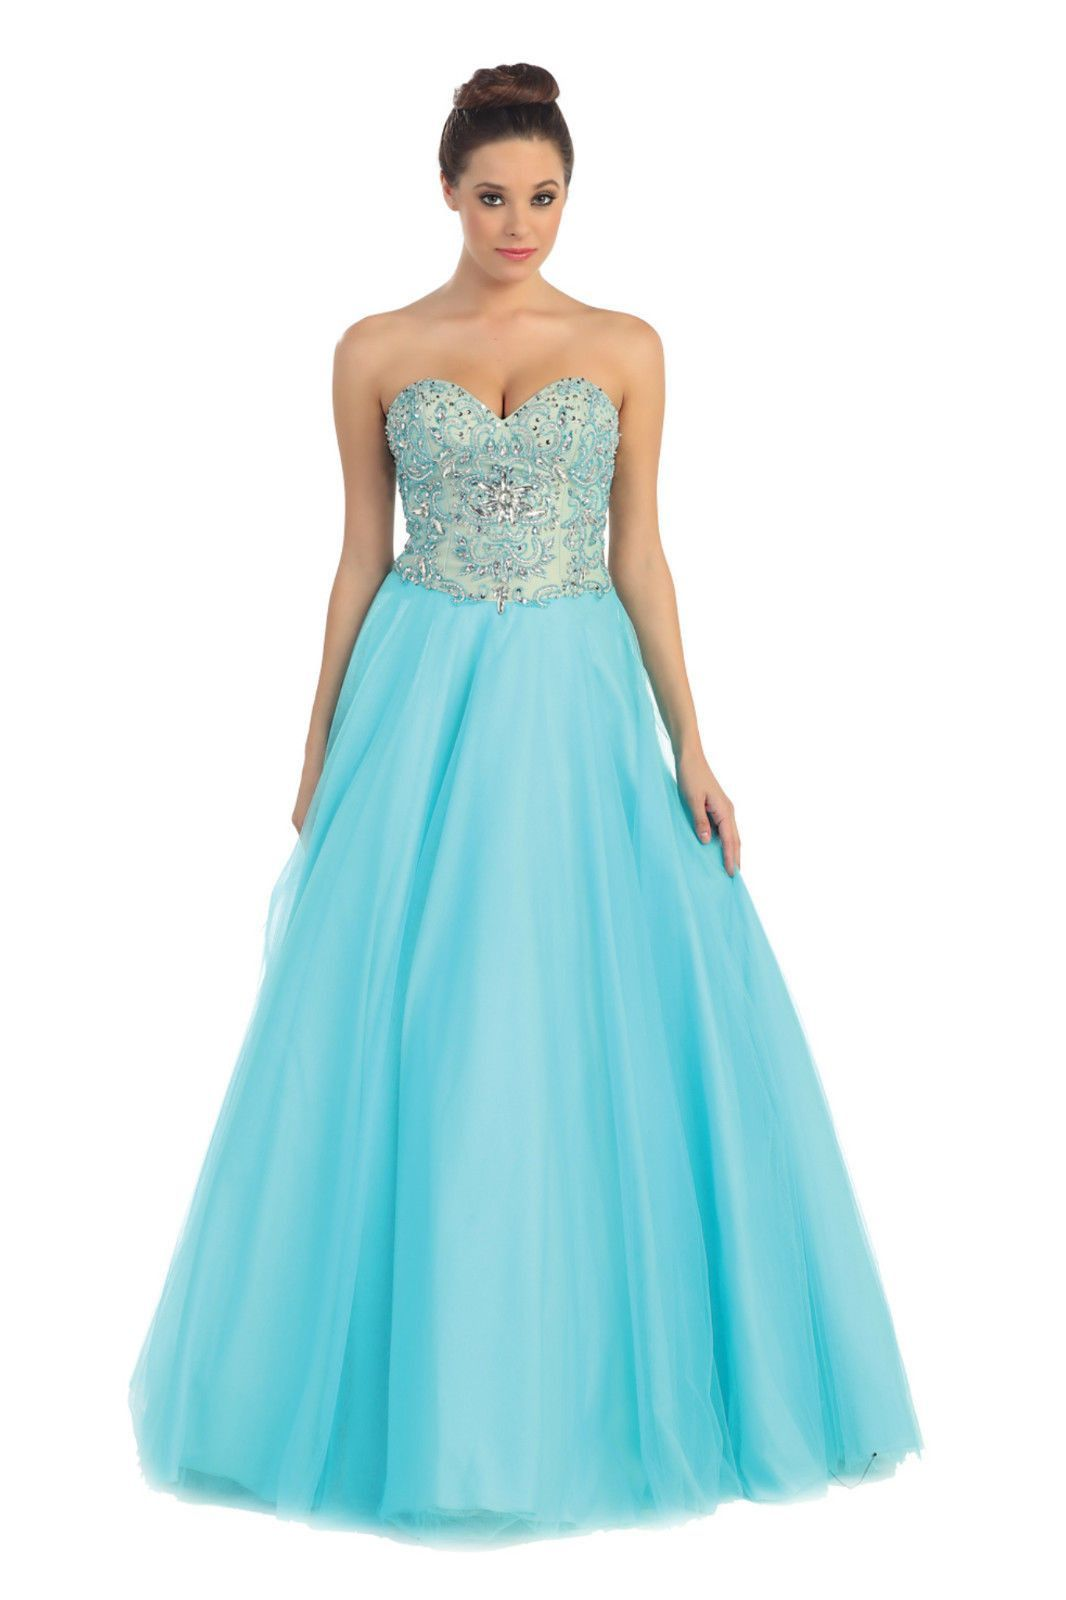 Sweetheart formal quinceanera prom long ball gown mkl pinterest